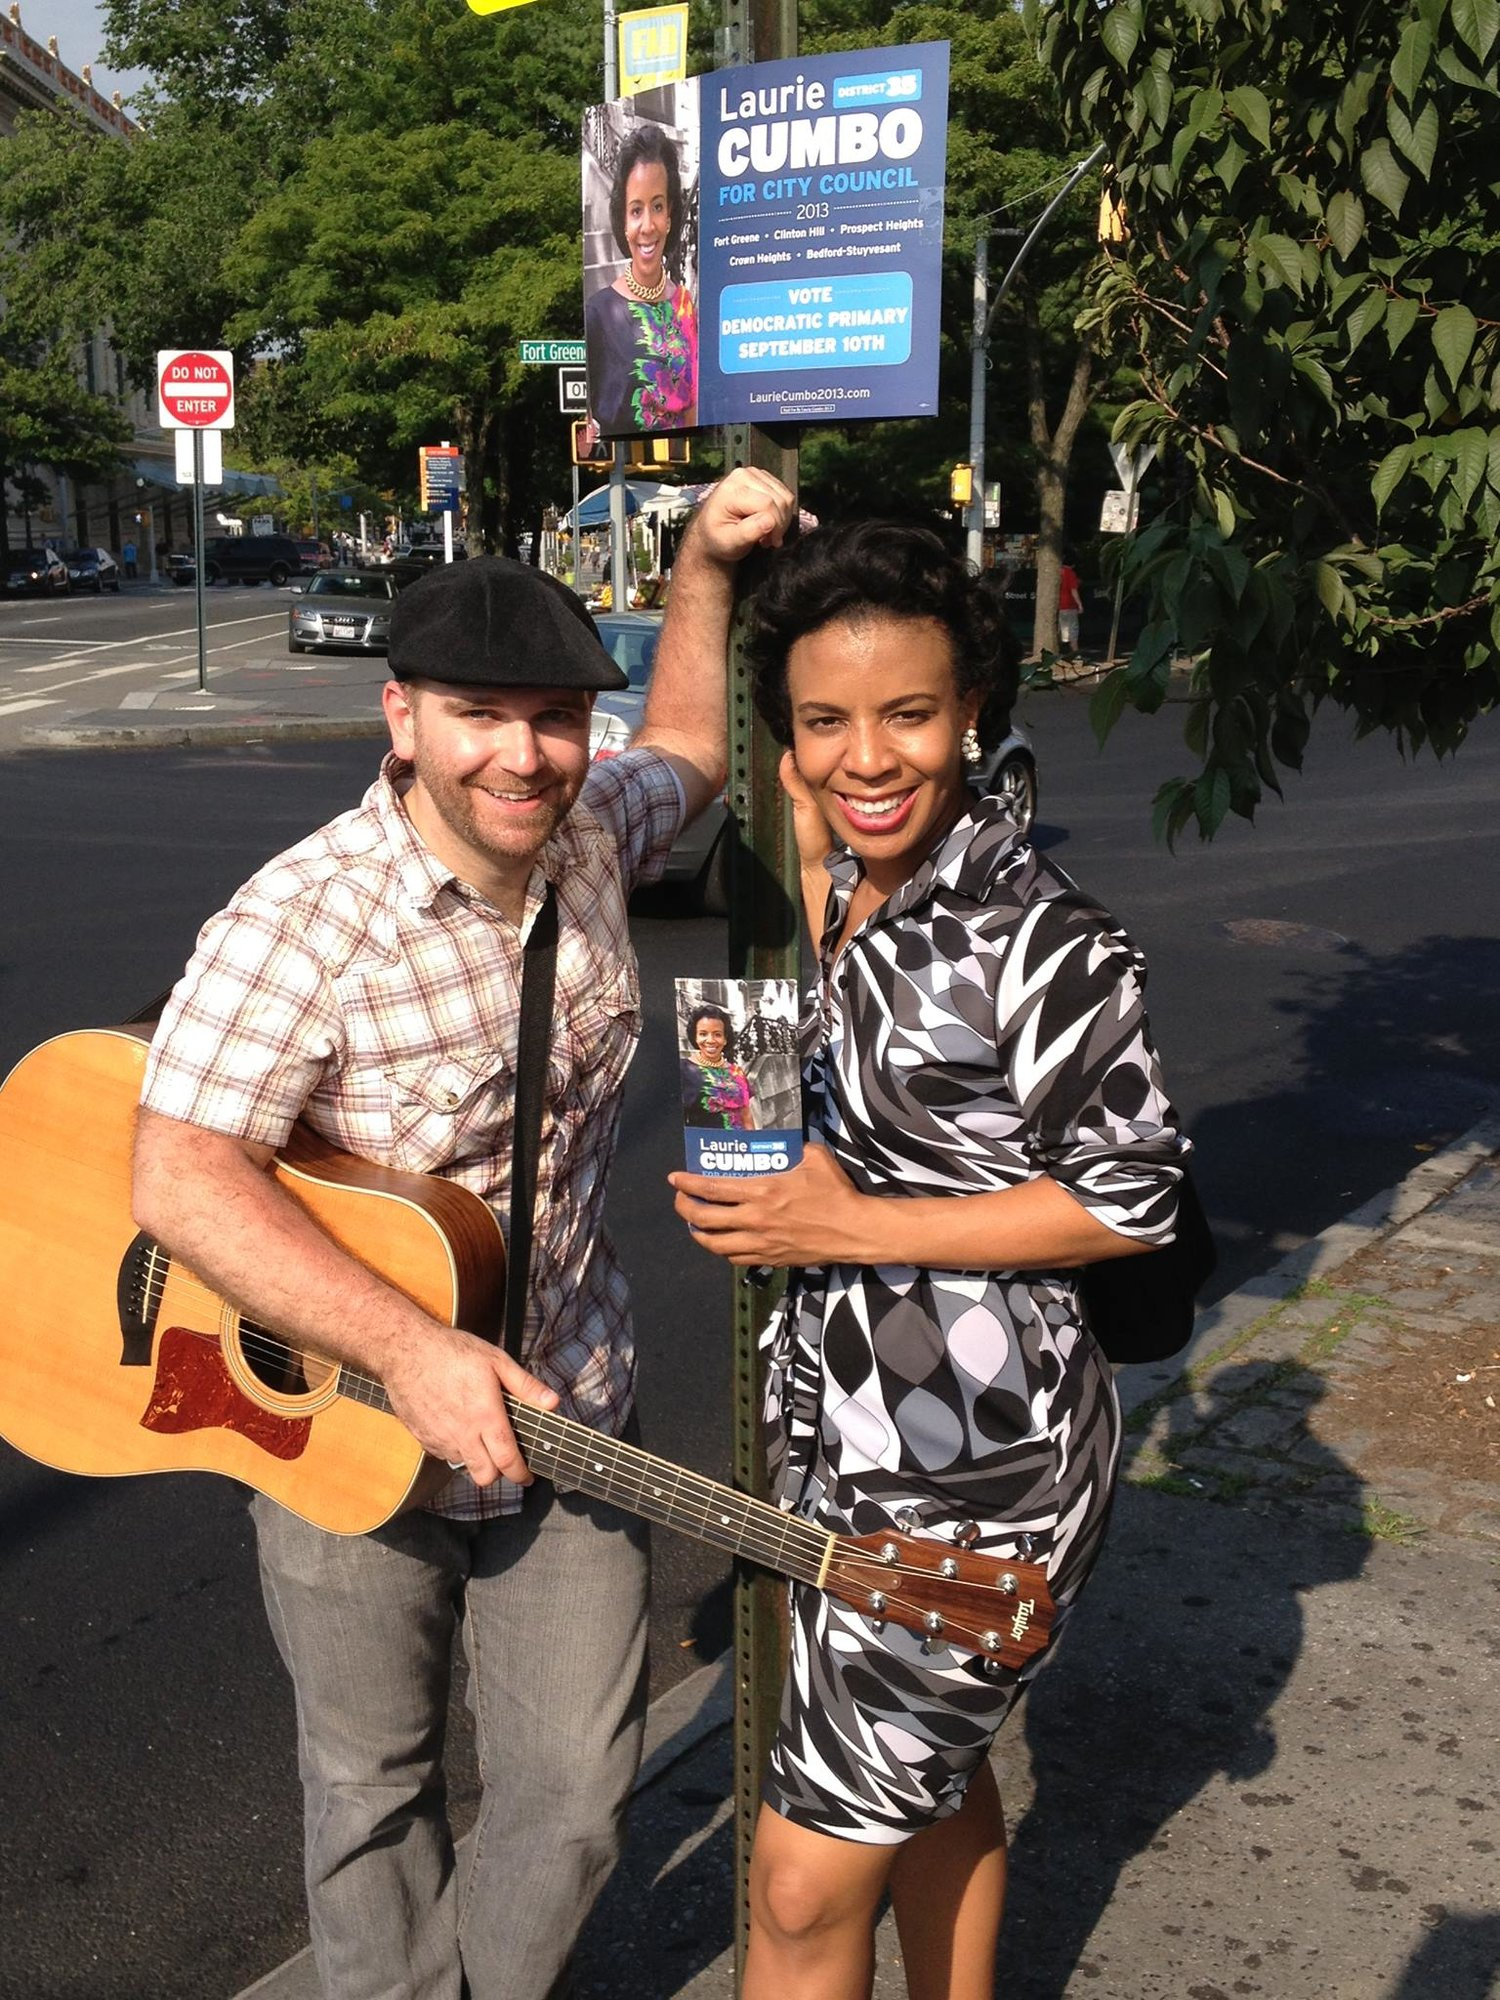 Arts and politics take it to the street. Robby Gonyo, LIT's Director of Election Engagement with Laurie Cumbo, the League's endorsed candidate for City Council District 35.